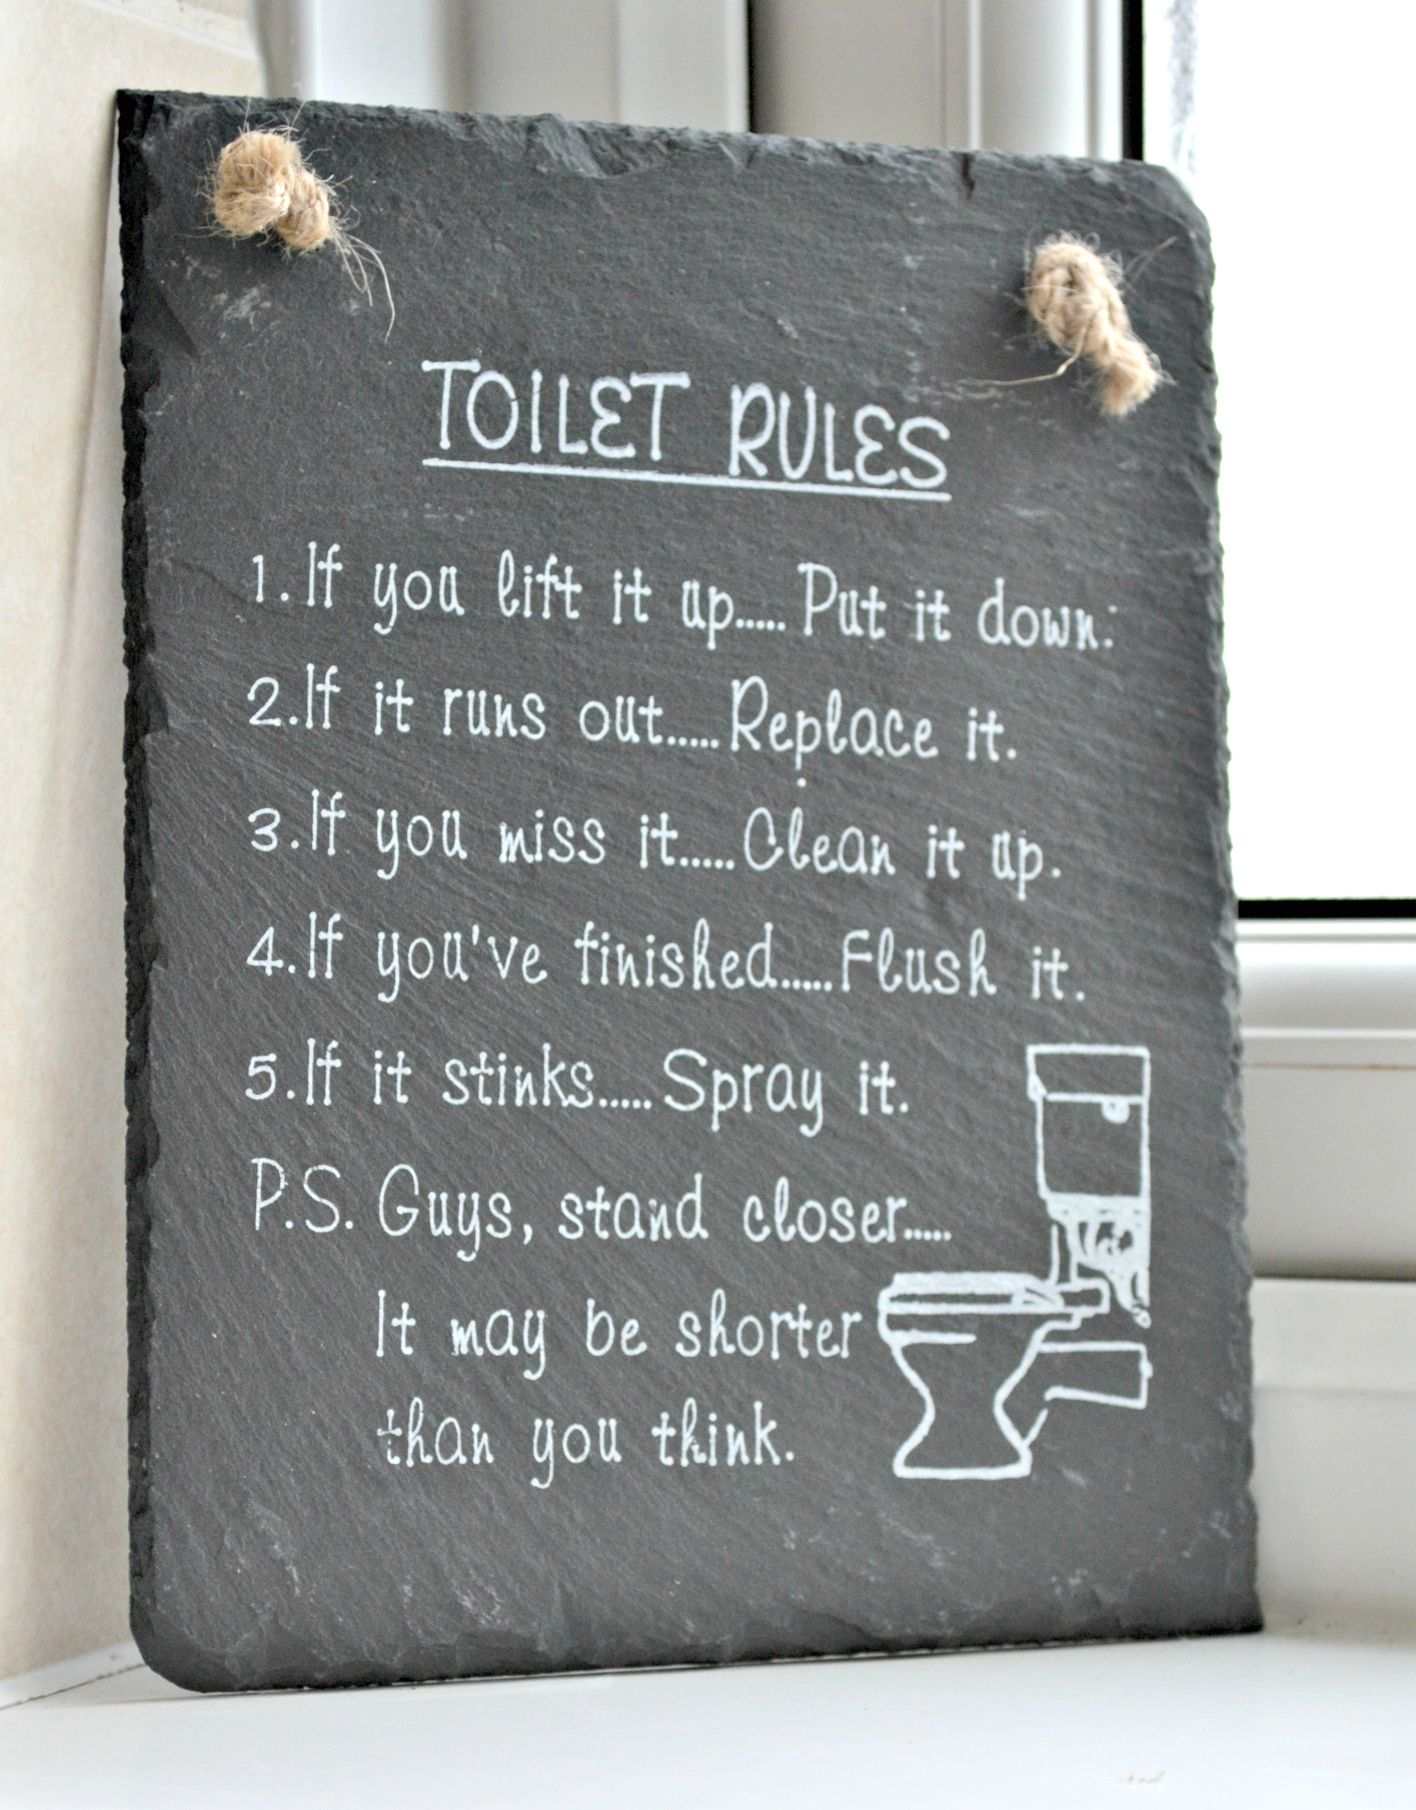 Pin By Ftf On Coff33 Shop Bathroom Rules Sign Toilet Rules Bathroom Rules